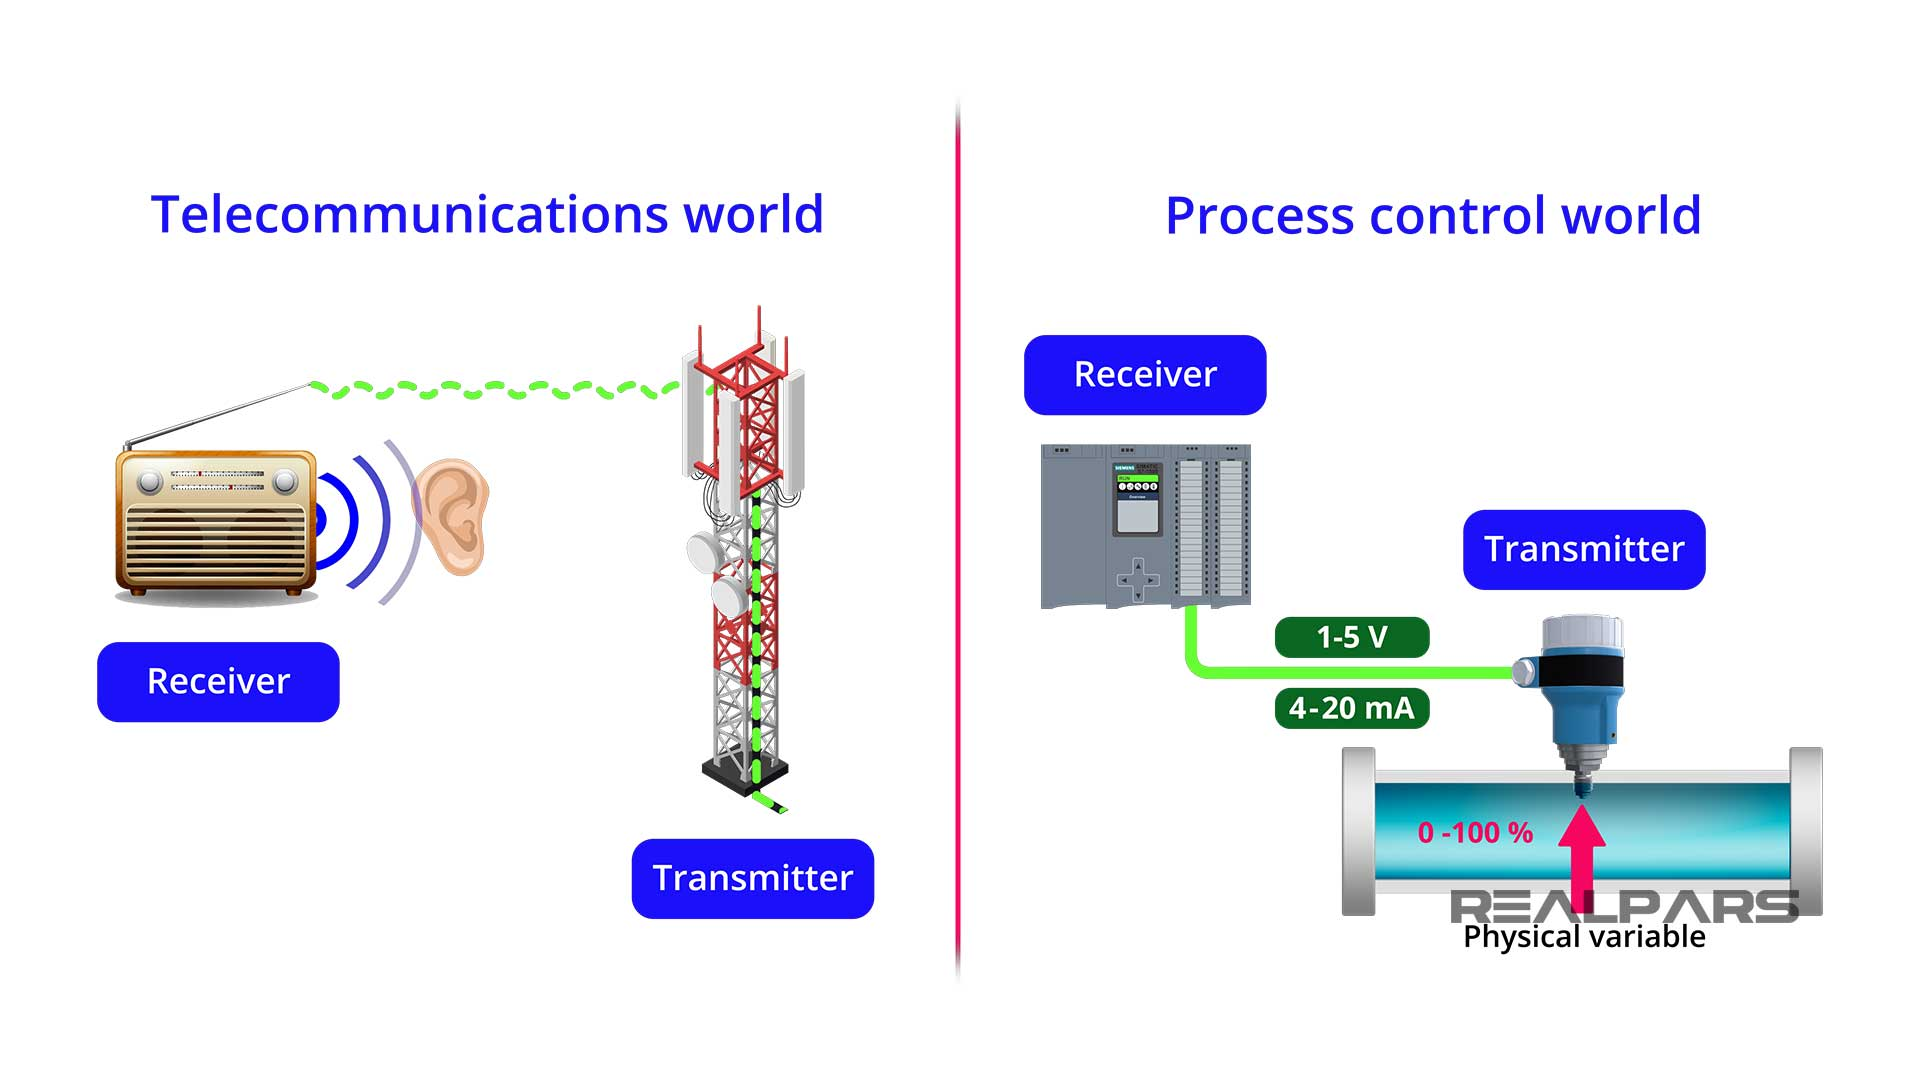 Transmitter-in-process-control-and-Telecommunications-worlds